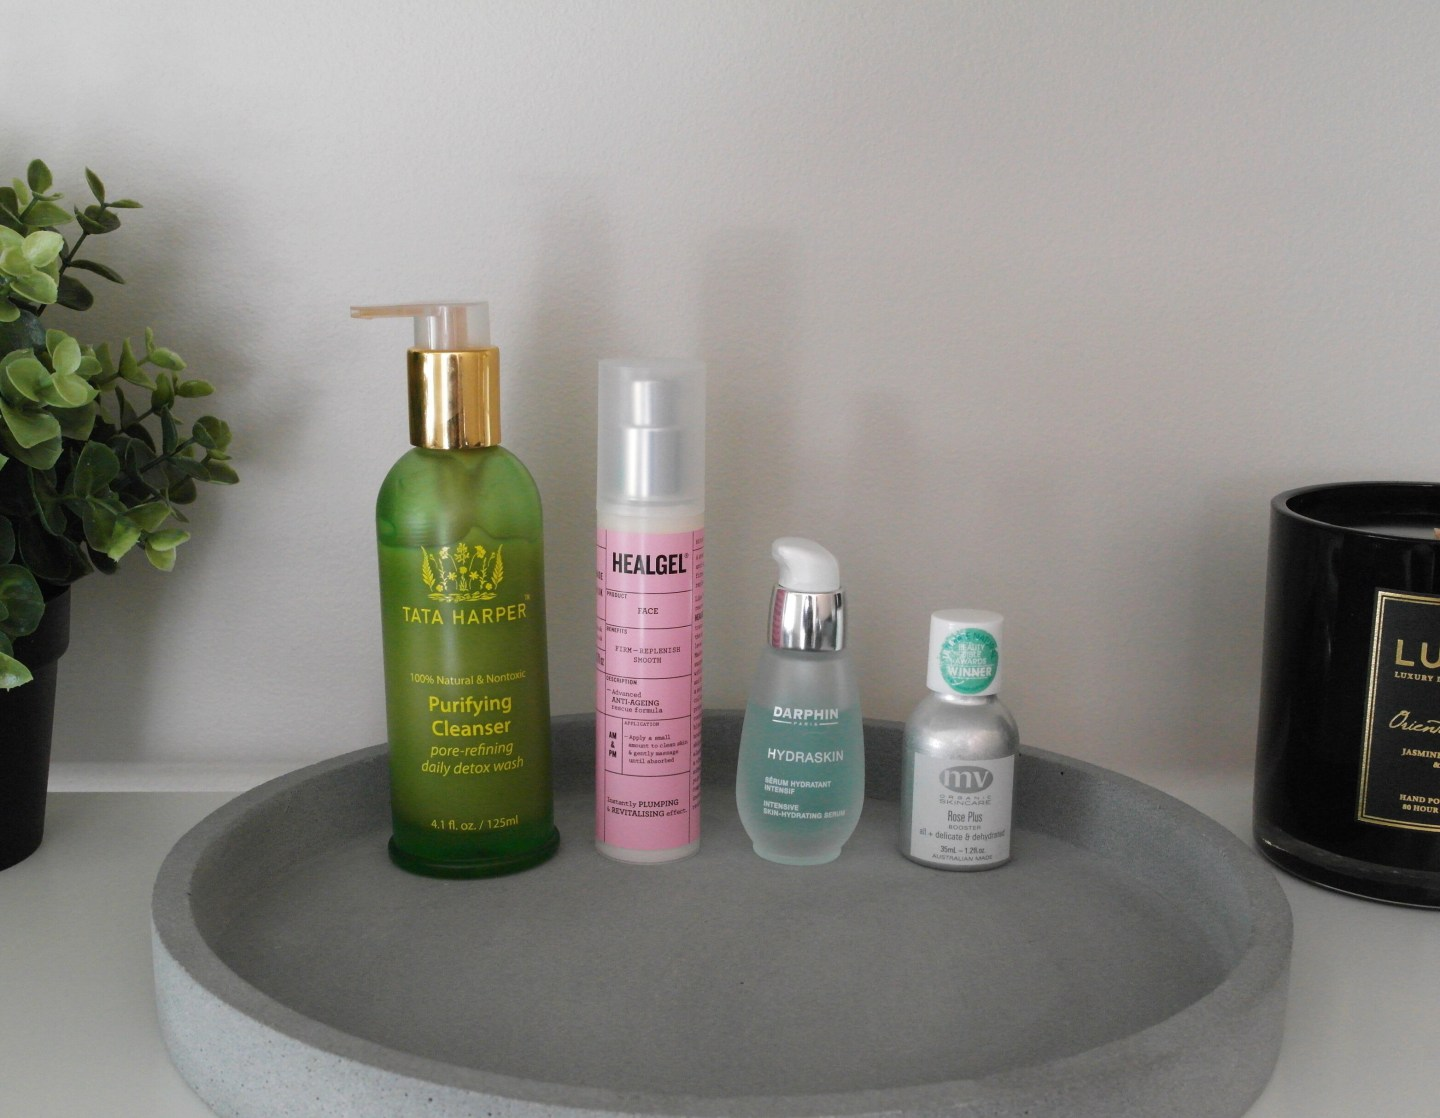 Tata Harper Purifying Cleanser, Heal Gel Face, Darphin Hydraskin Serum, MV Organics Rose Plus Booster